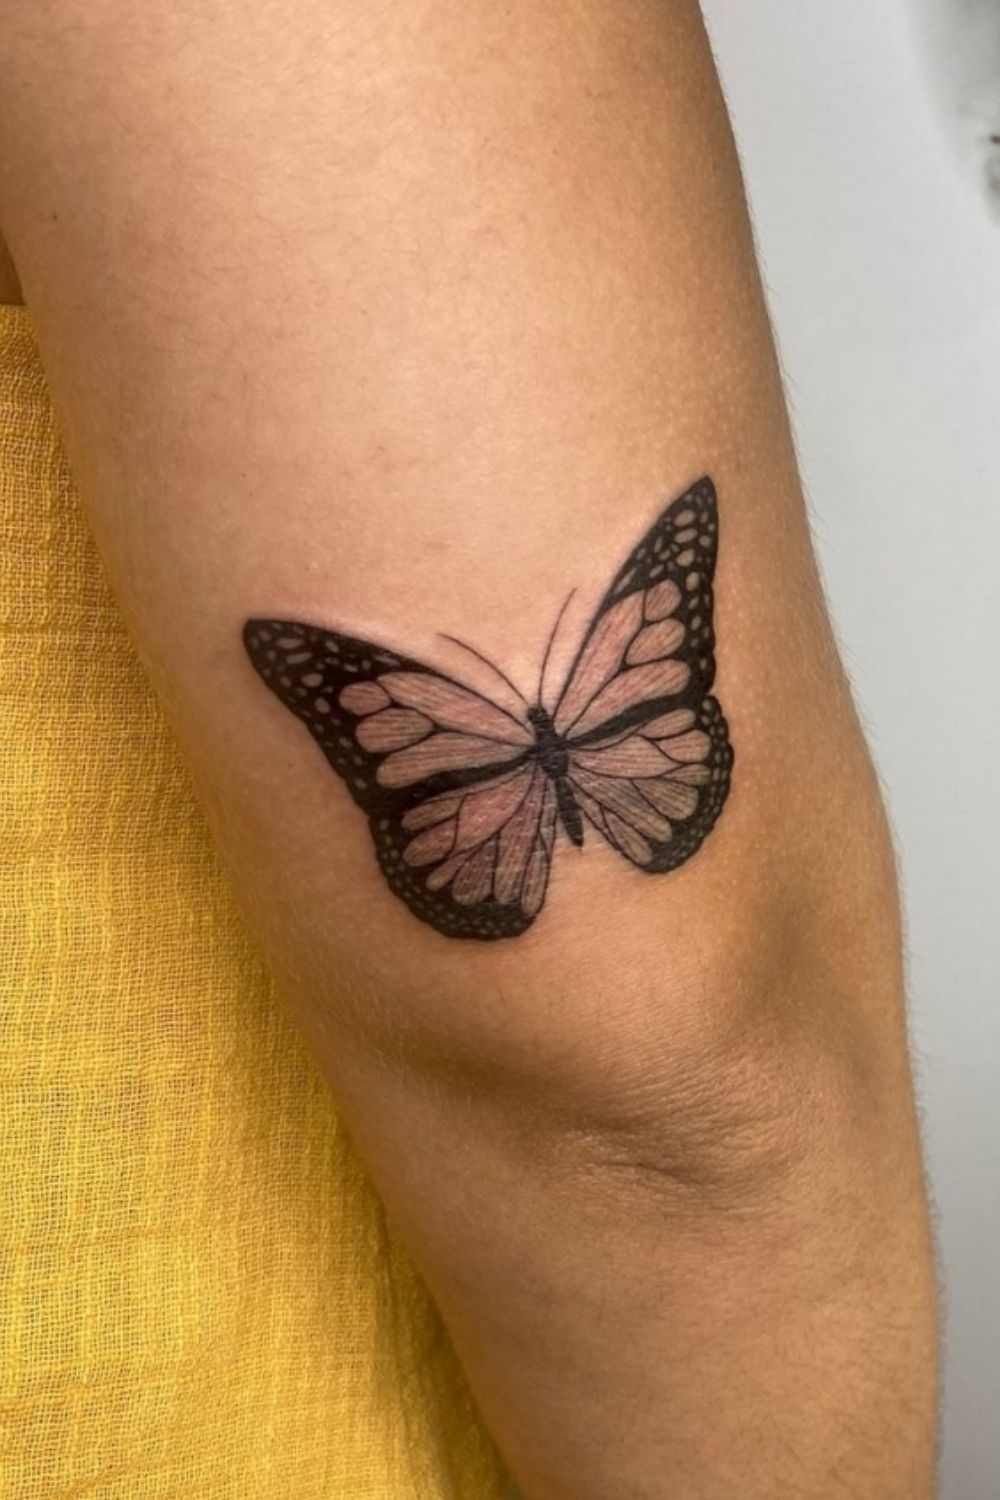 40+ Amazing Butterfly Hand Tattoo Designs For Women You must Look